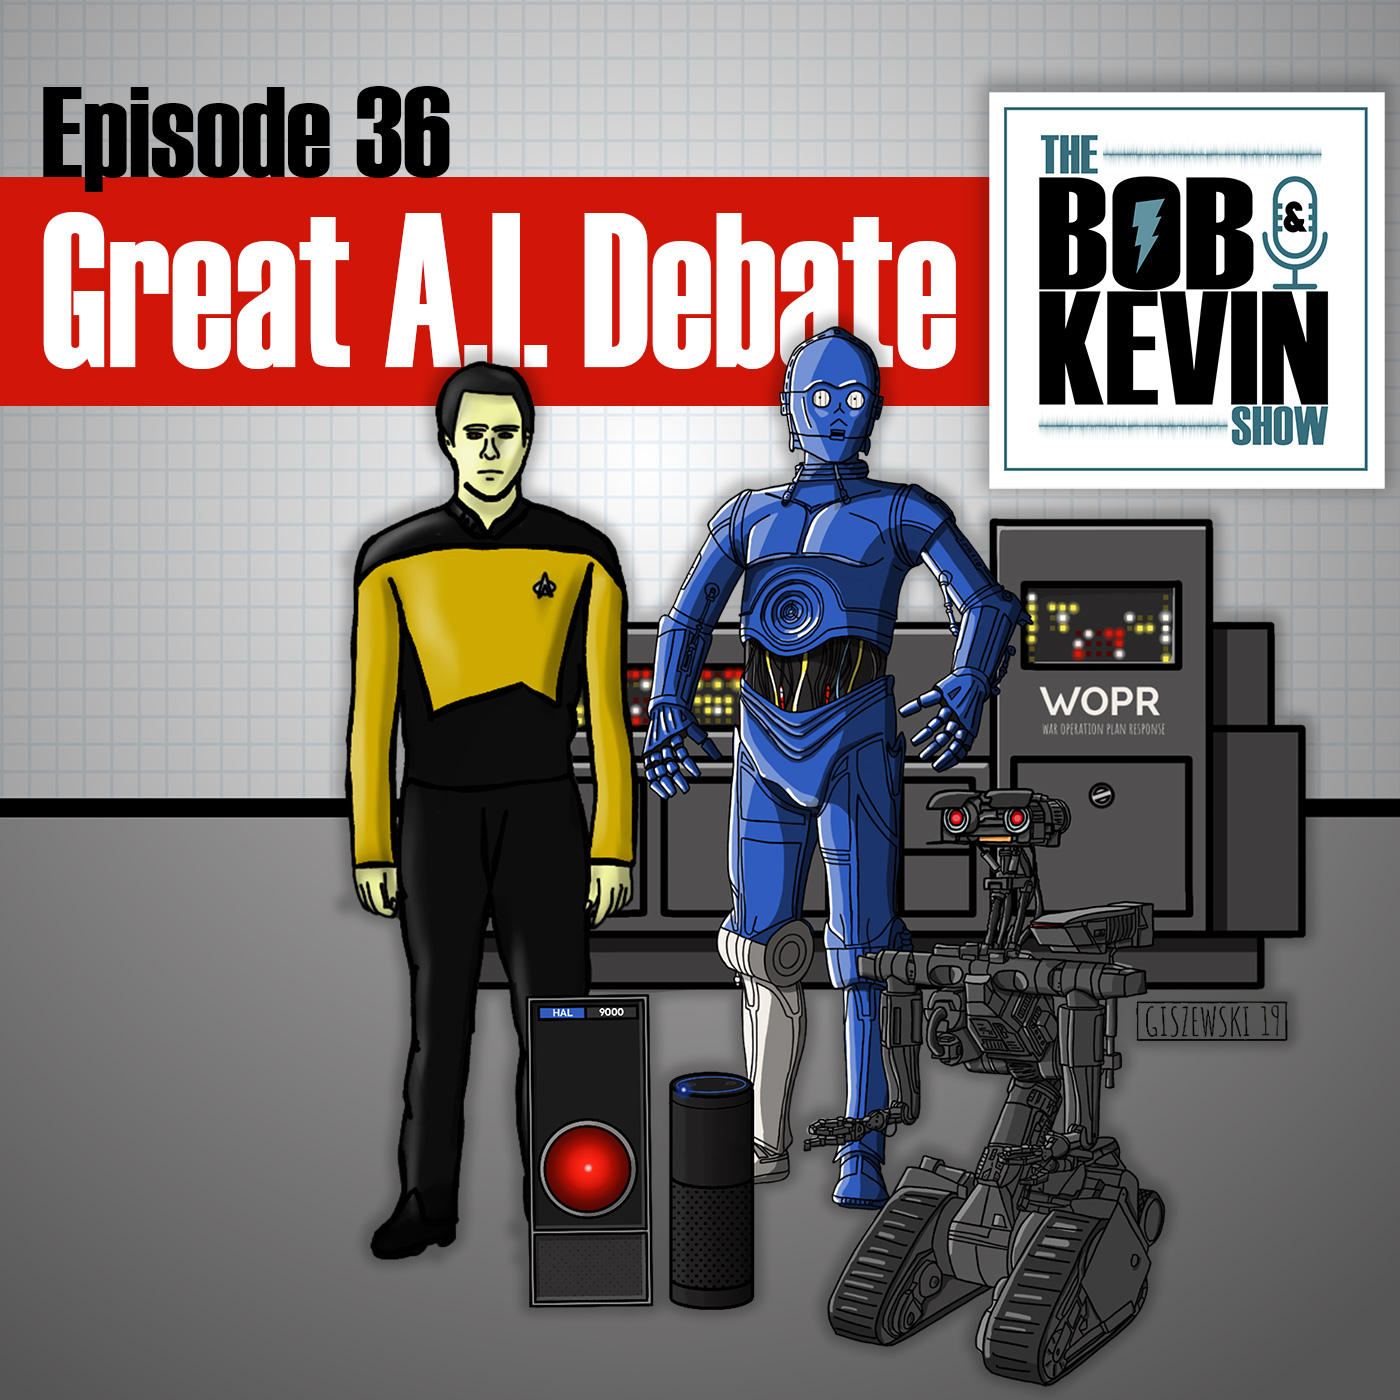 Ep. 036 - The great A.I. debate with discussion on Alan Turing's contributions to artificial intelligence, Lex Fridman's thoughts from Joe Rogan #1188 and a multitude of paradoxes